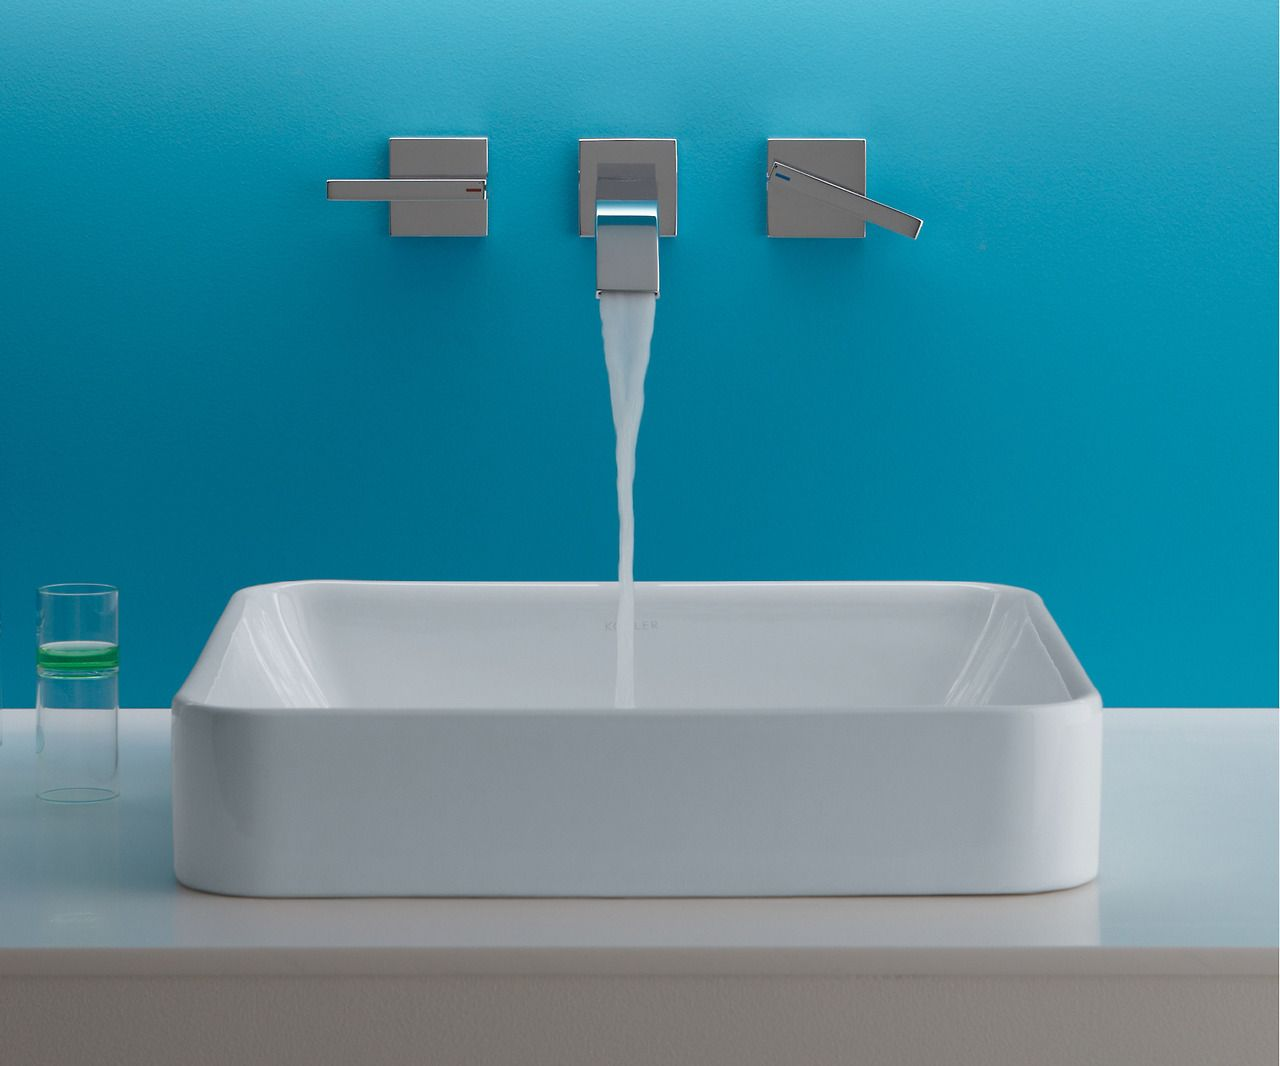 Sleek and Contemporary The Vox Square Vessel Style Sink Features